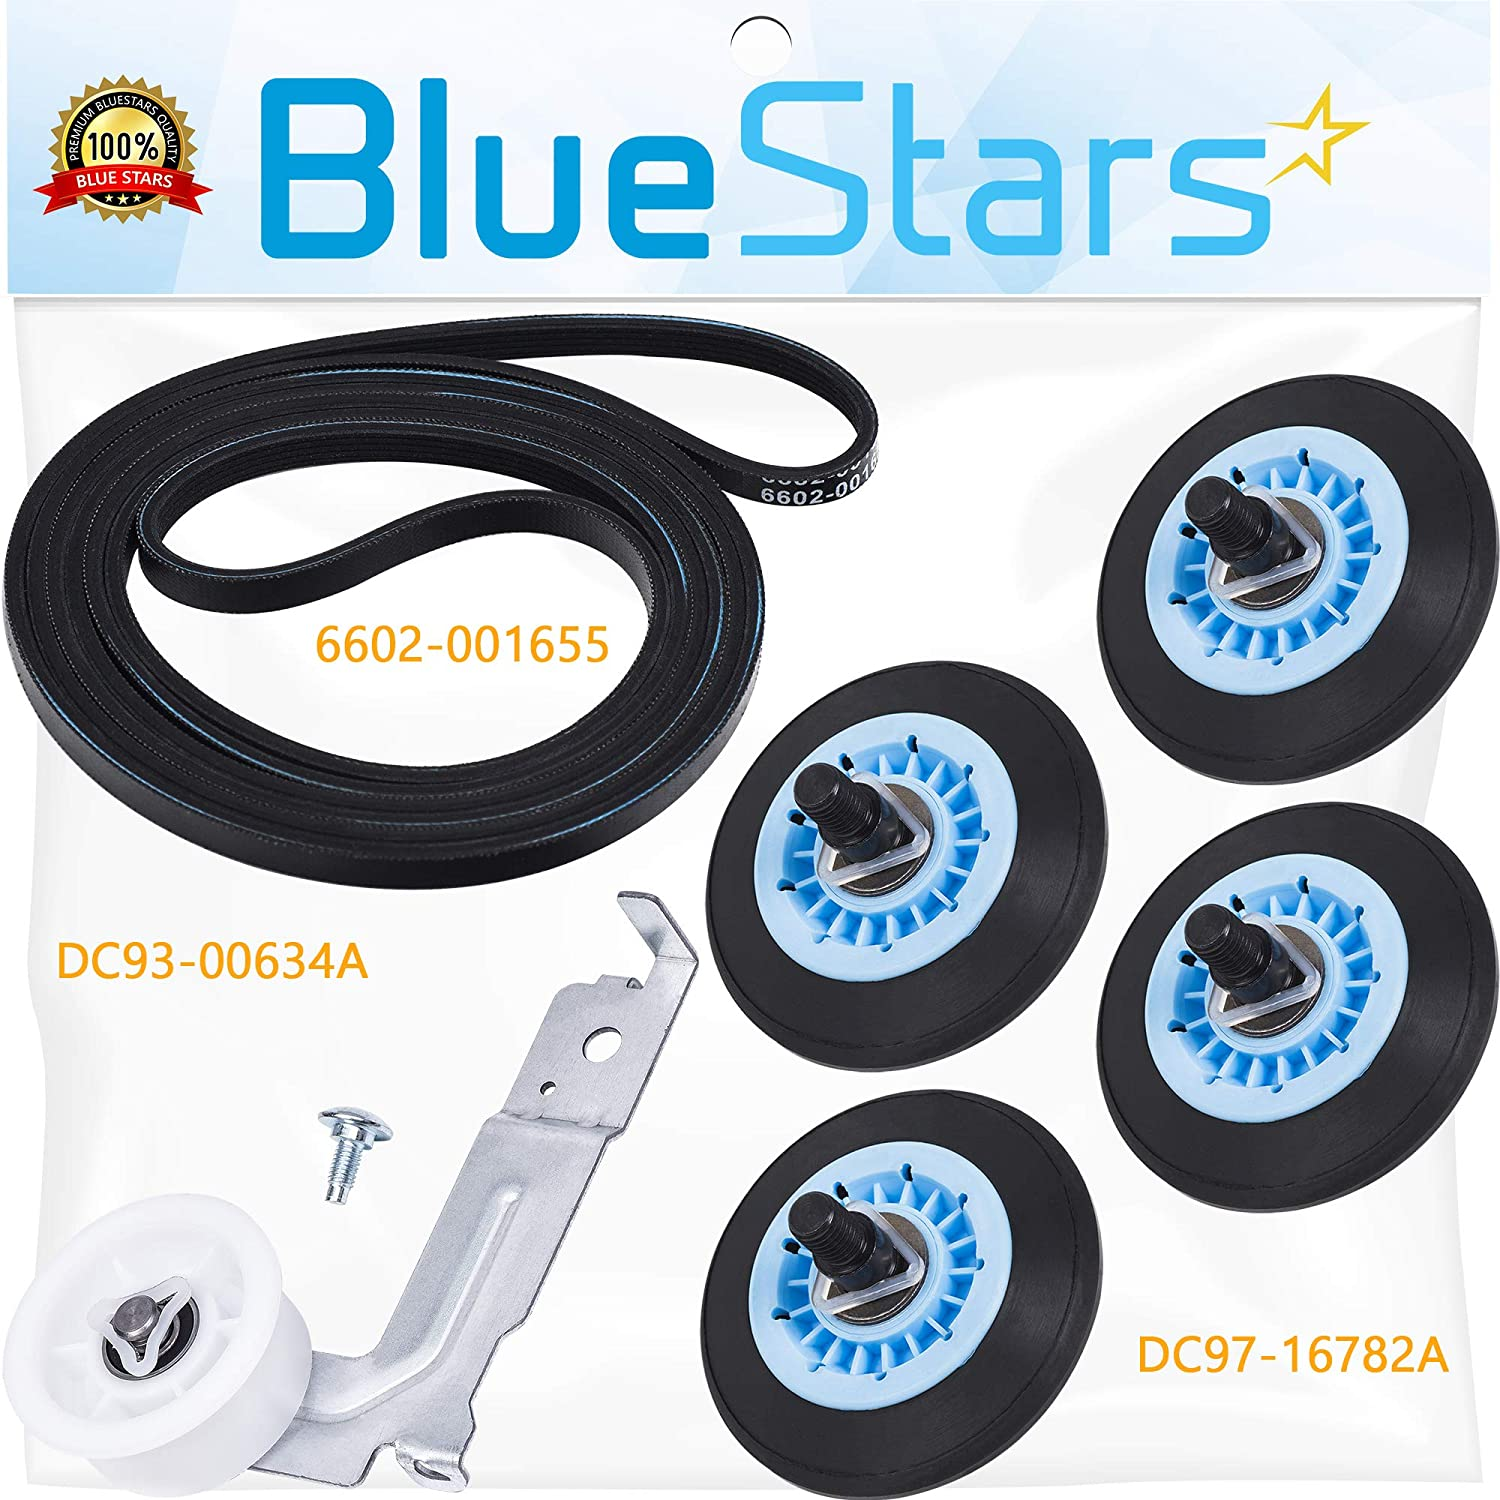 Ultra Durable DC97-16782A & 6602-001655 & DC93-00634A Dryer Repair Kit Replacement by Blue Stars - Exact Fit for Samsung & Kenmore Dryers